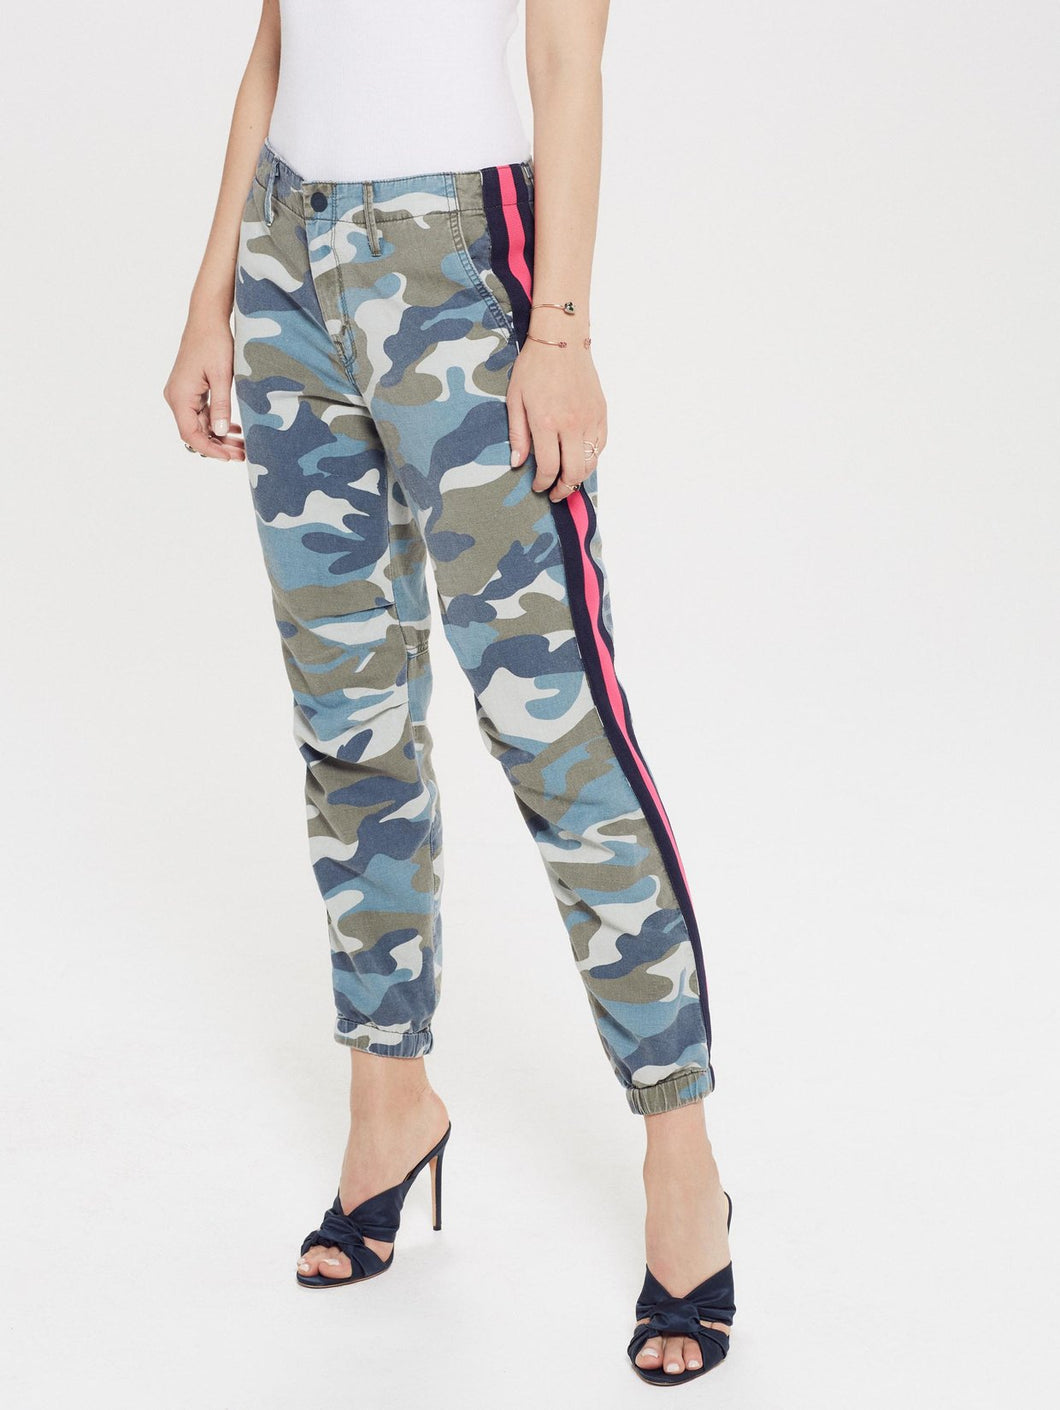 No Zip Misfit - Army Blue Camo